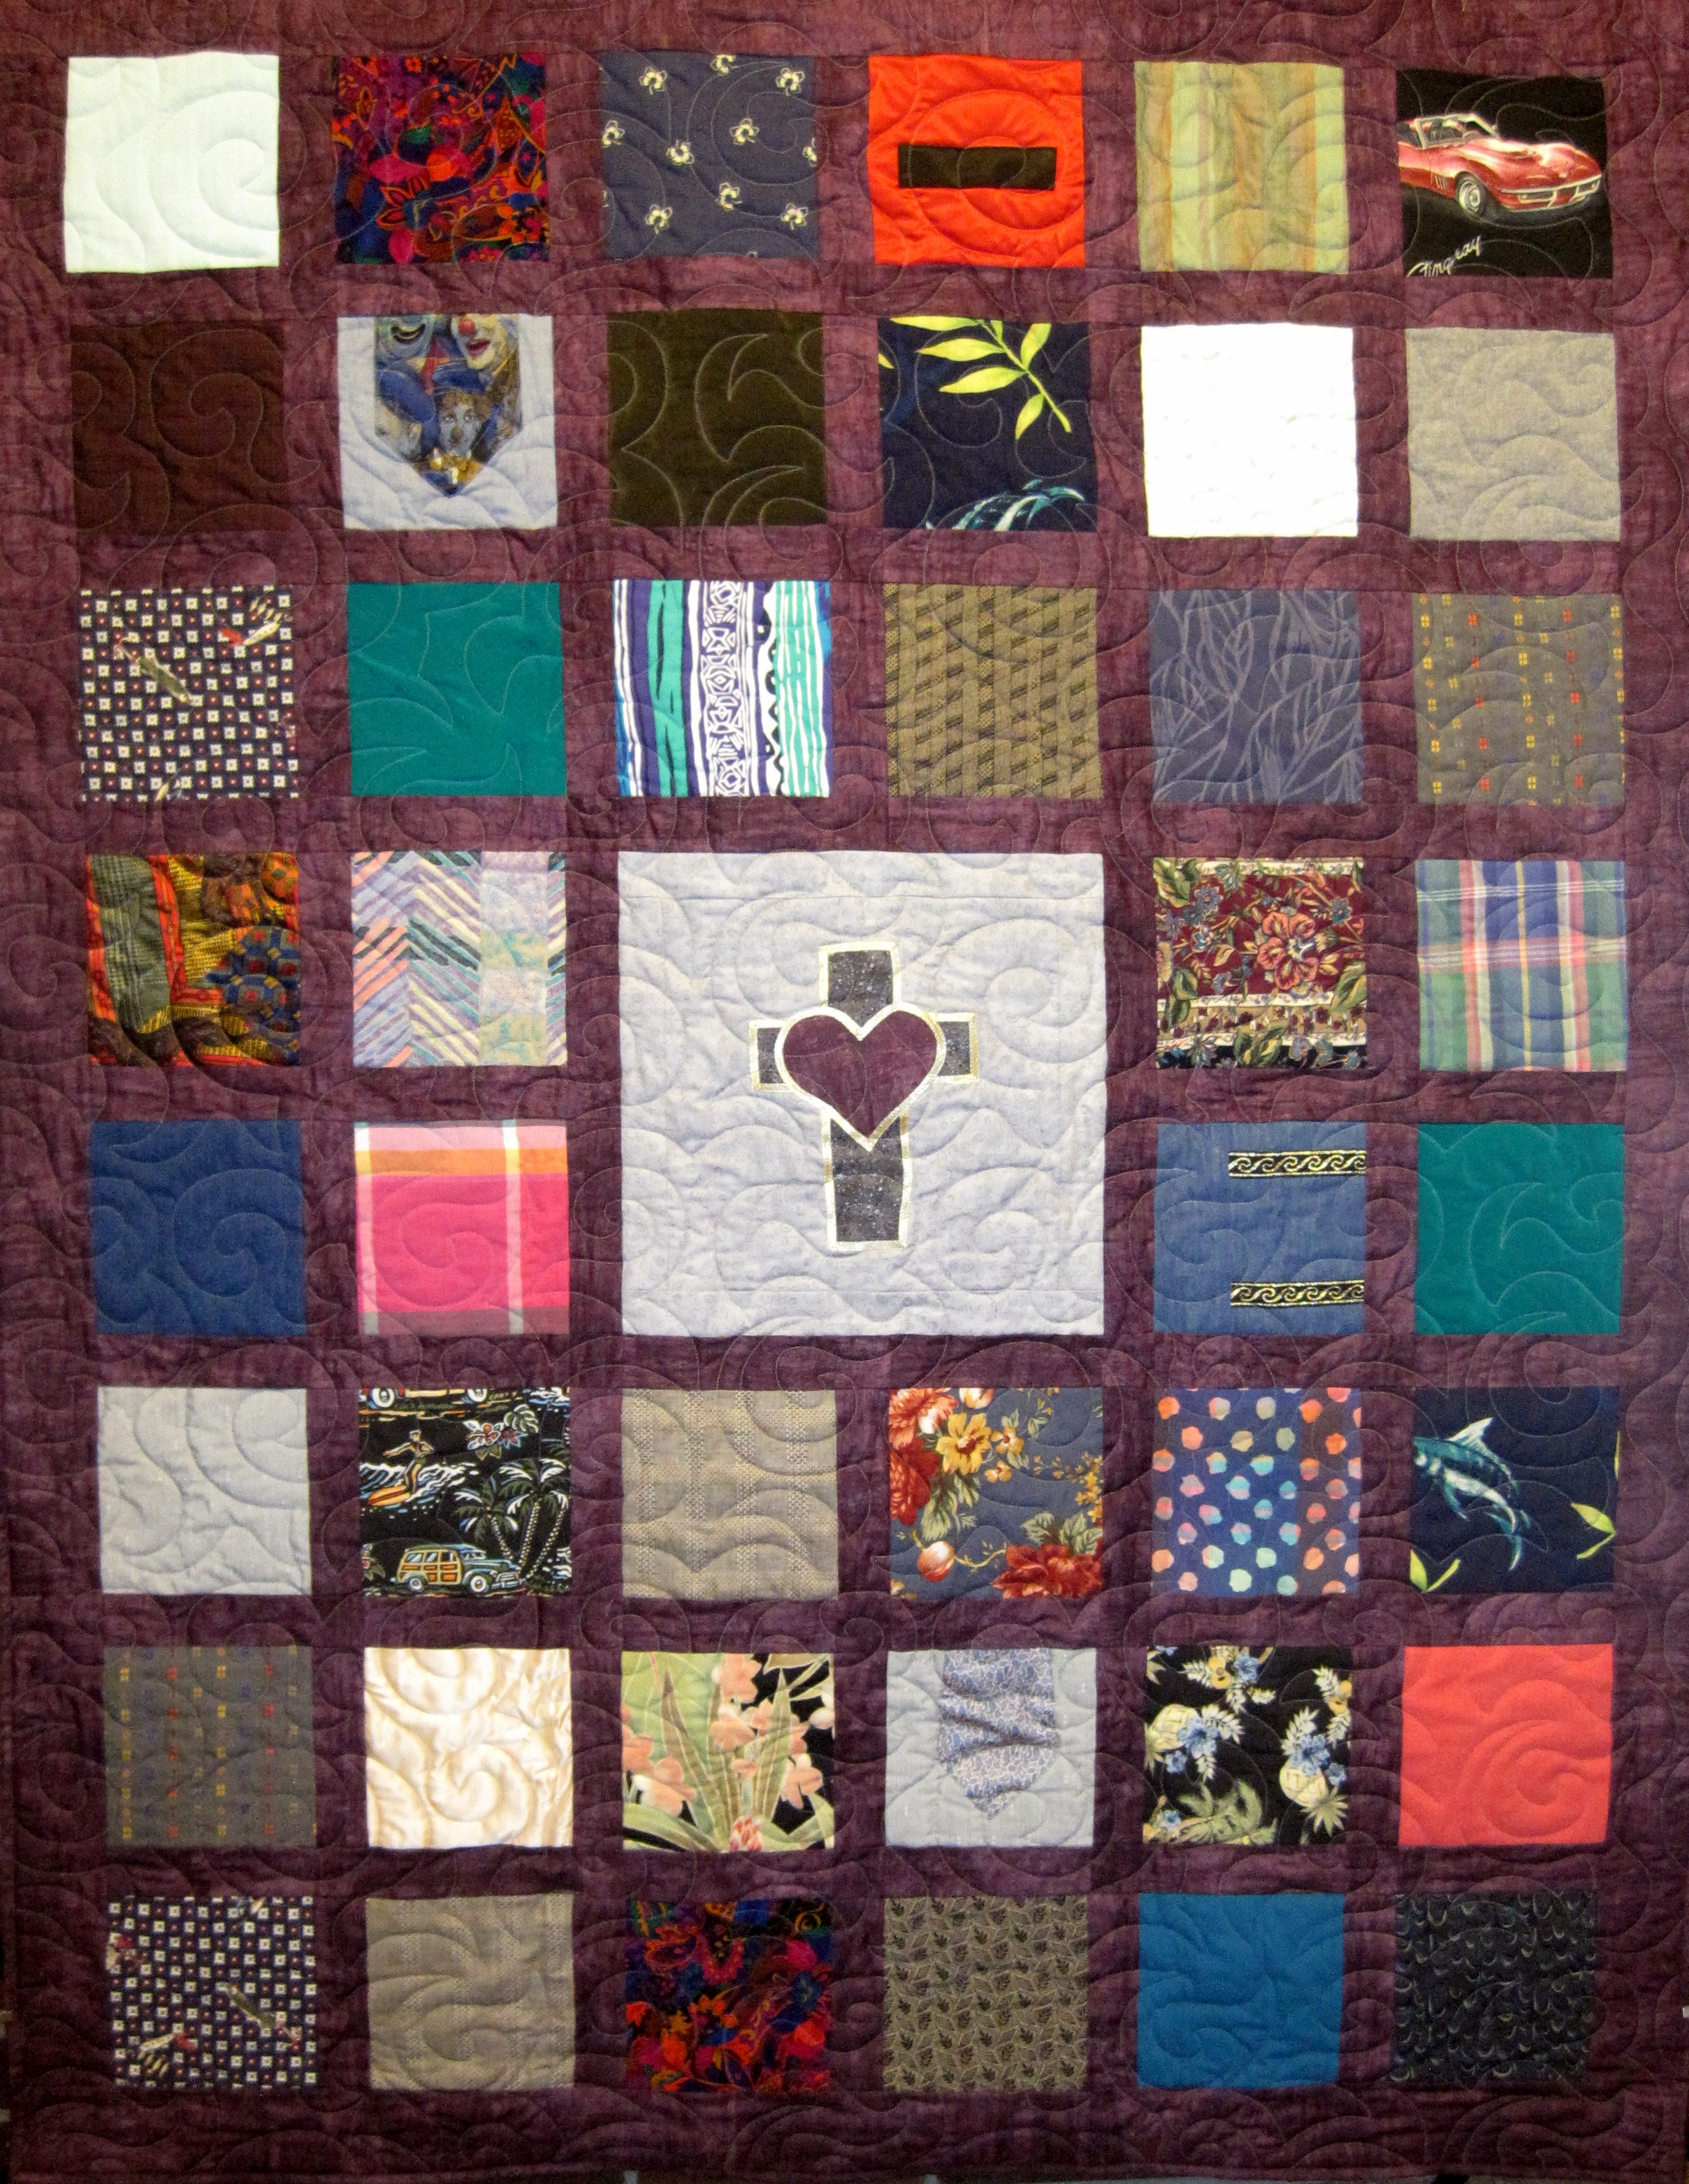 Memory T Shirt And Clothing Quilts Have Special Meaning